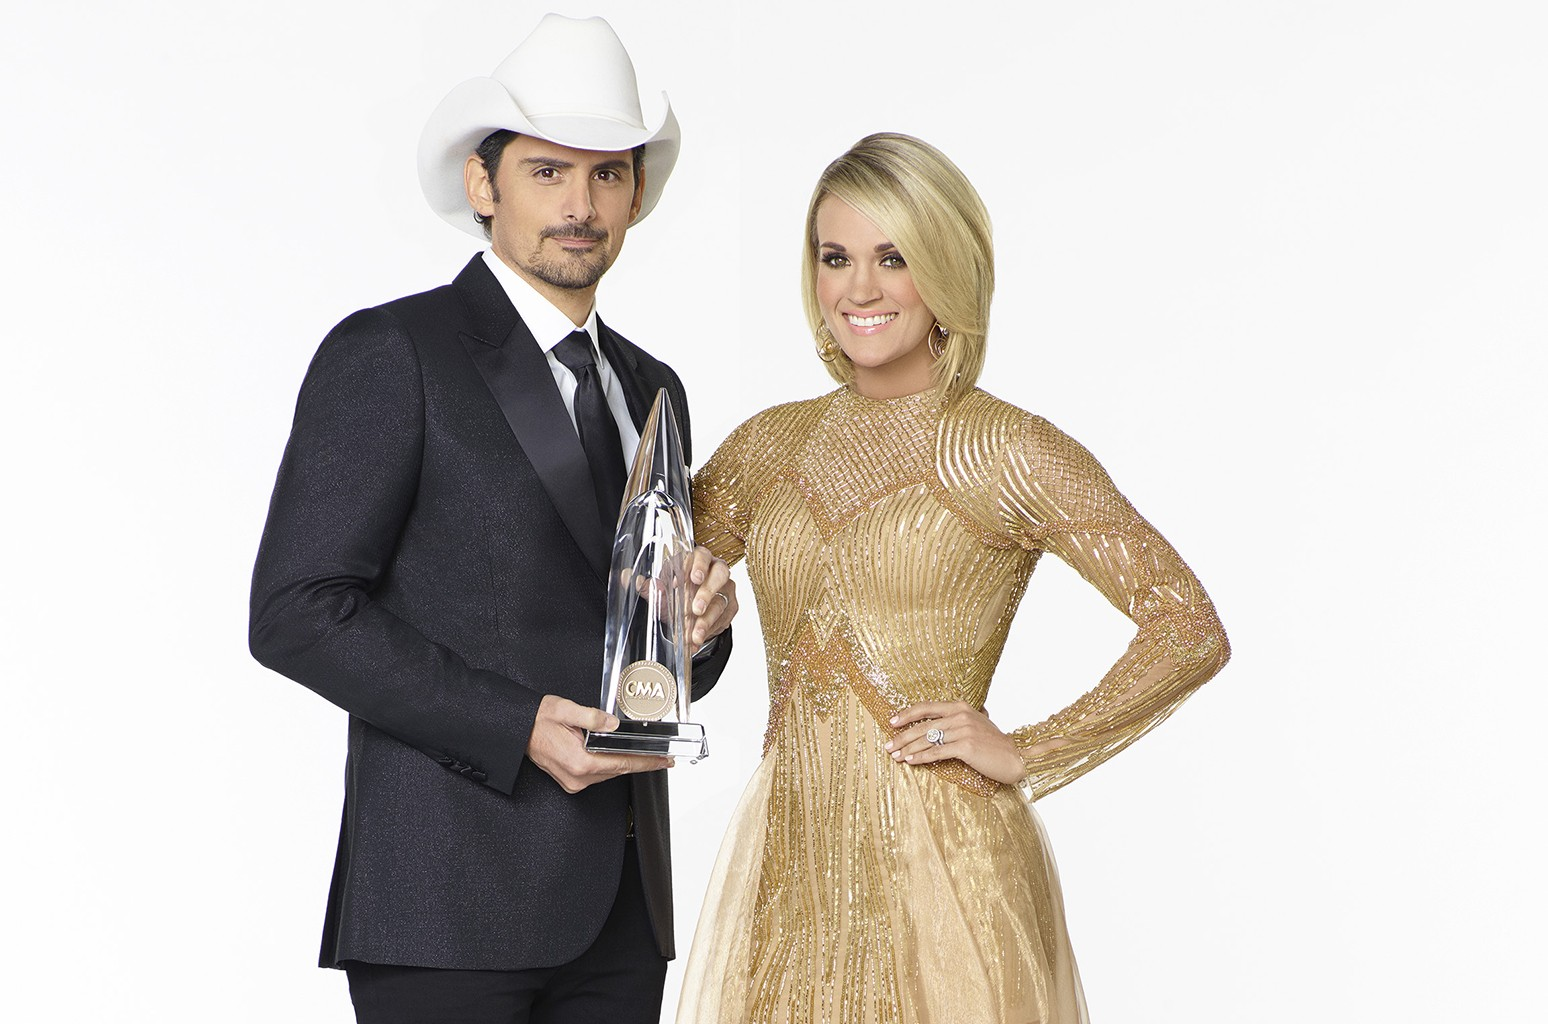 Brad Paisley and Carrie Underwood.